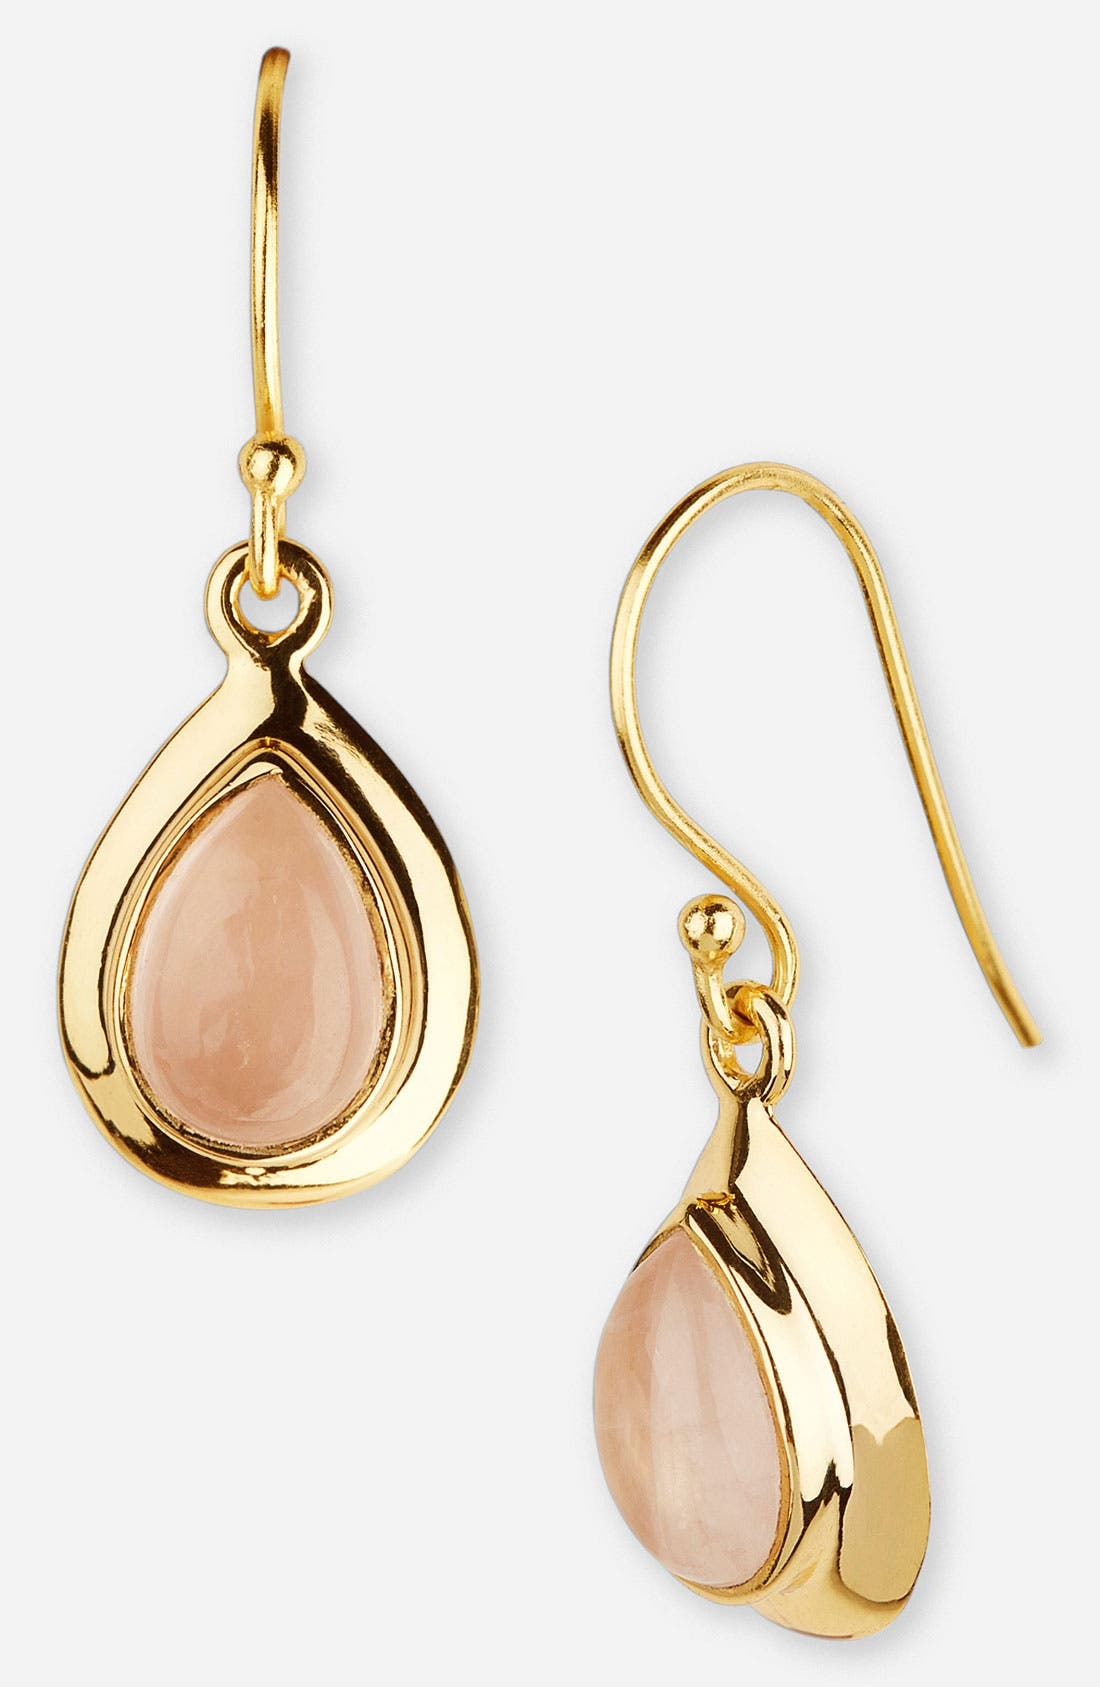 Alternate Image 1 Selected - Argento Vivo Teardrop Earrings (Nordstrom Exclusive)